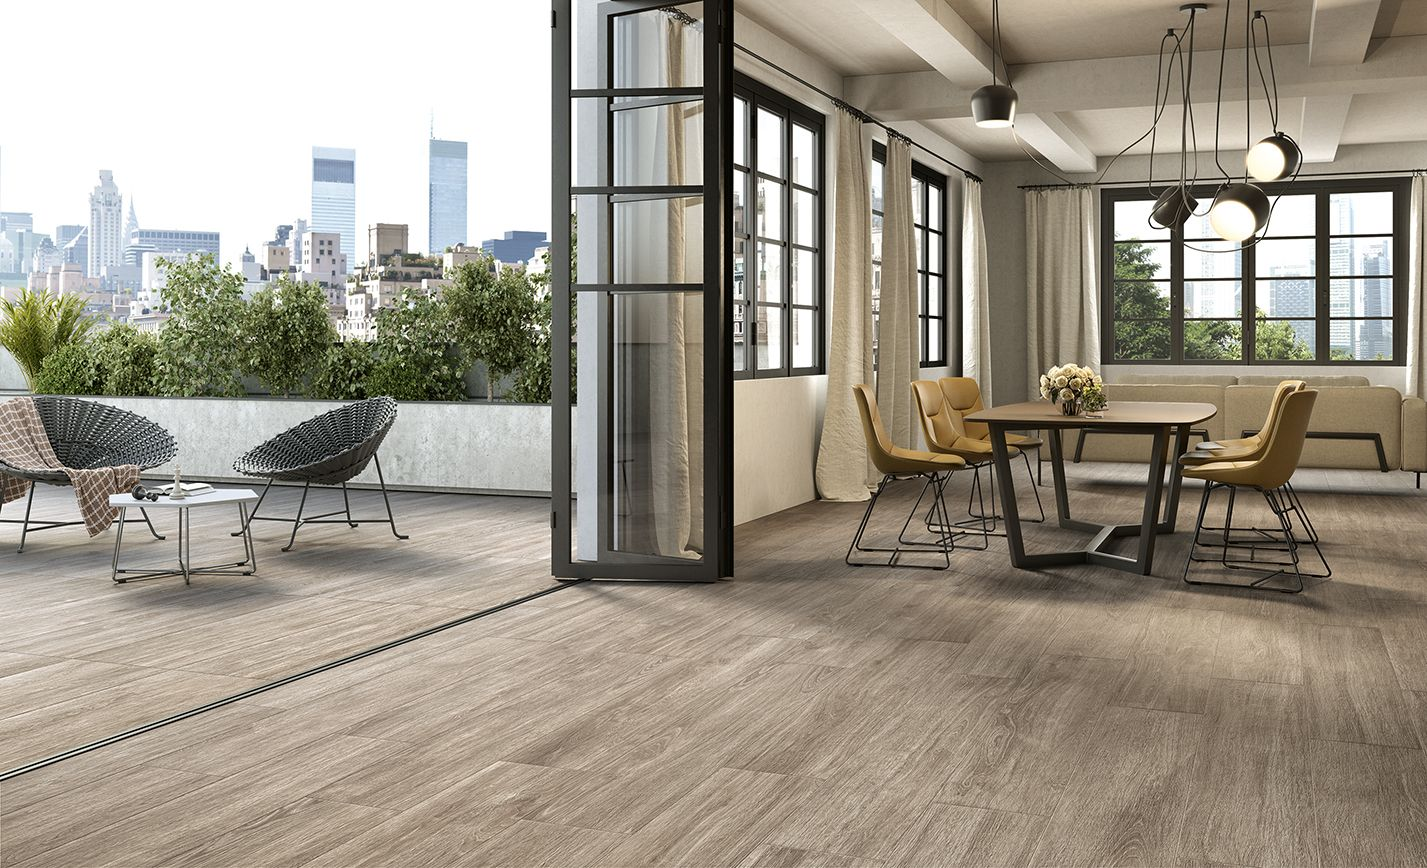 The Natural Feeling Tile from Novabell is a great example